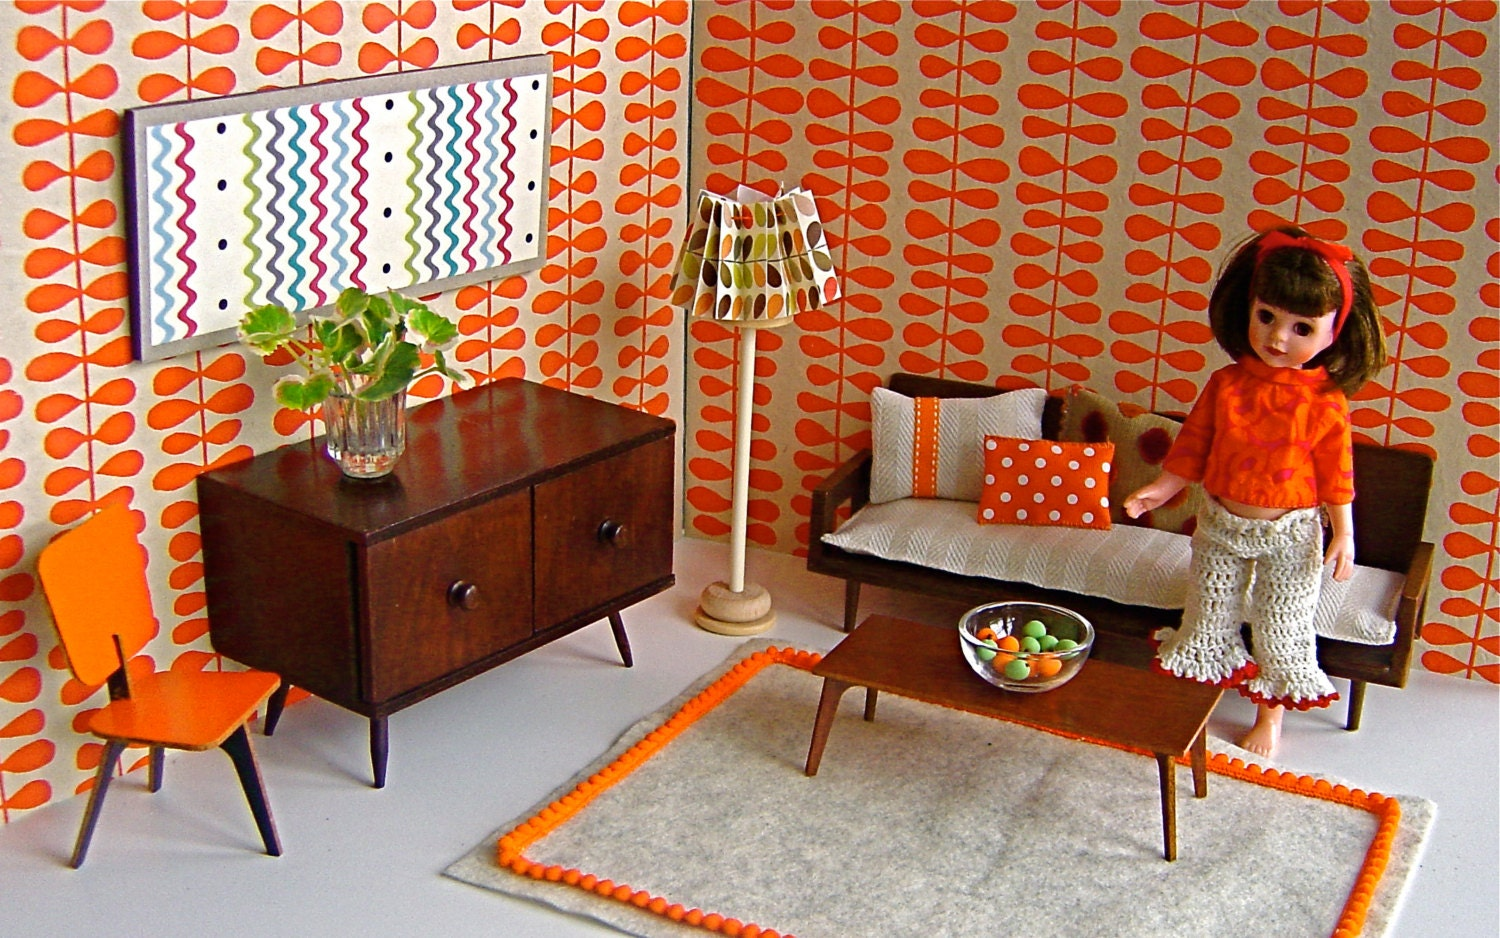 MATTEL DOLL SOFA and Halls Lifetime Toys sideboard in Mid Century Room for Betsy McCall, Ginny, Blythe, Riley Kish, Sindy,